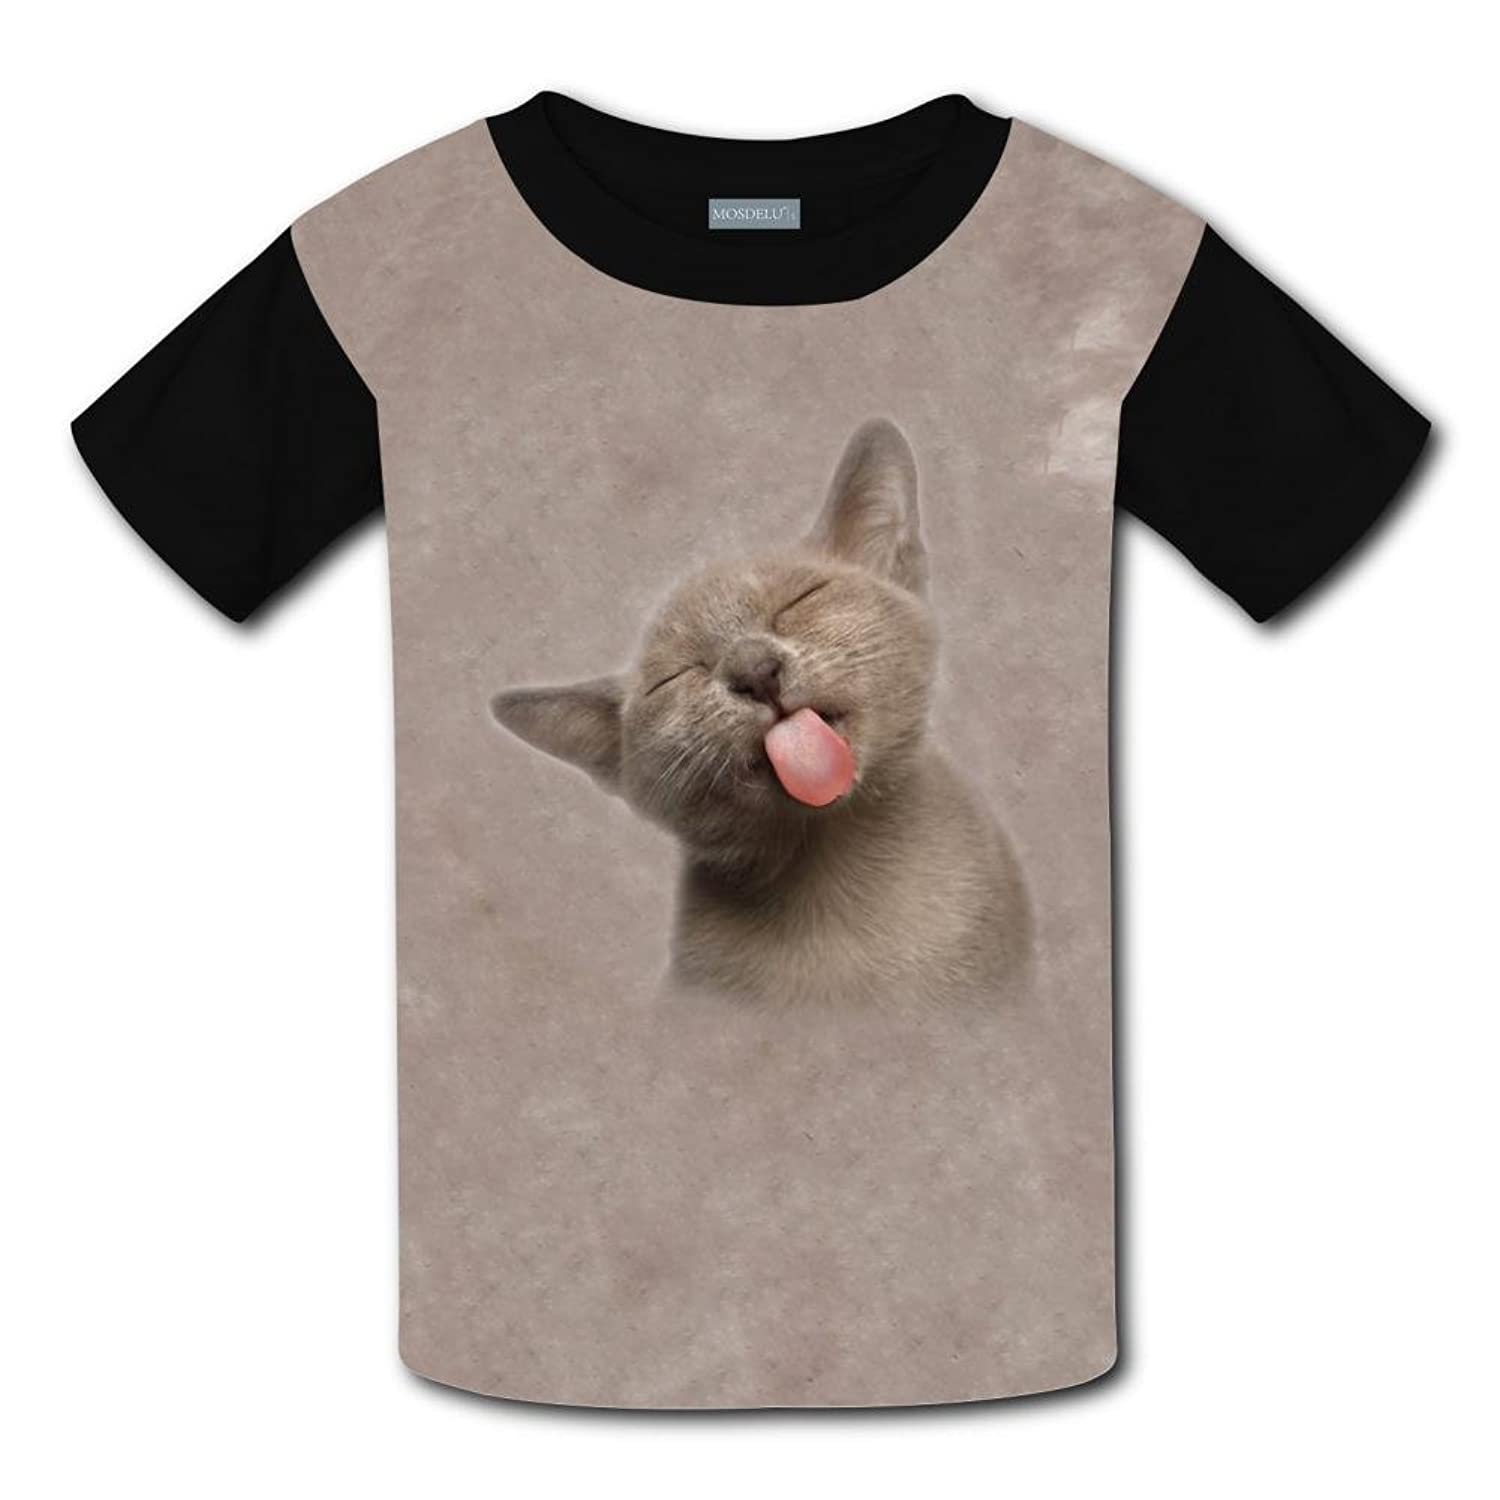 A Naughty Cat Light Weight T-Shirt 2017 The Latest Version For Kidsfree Postage supplier